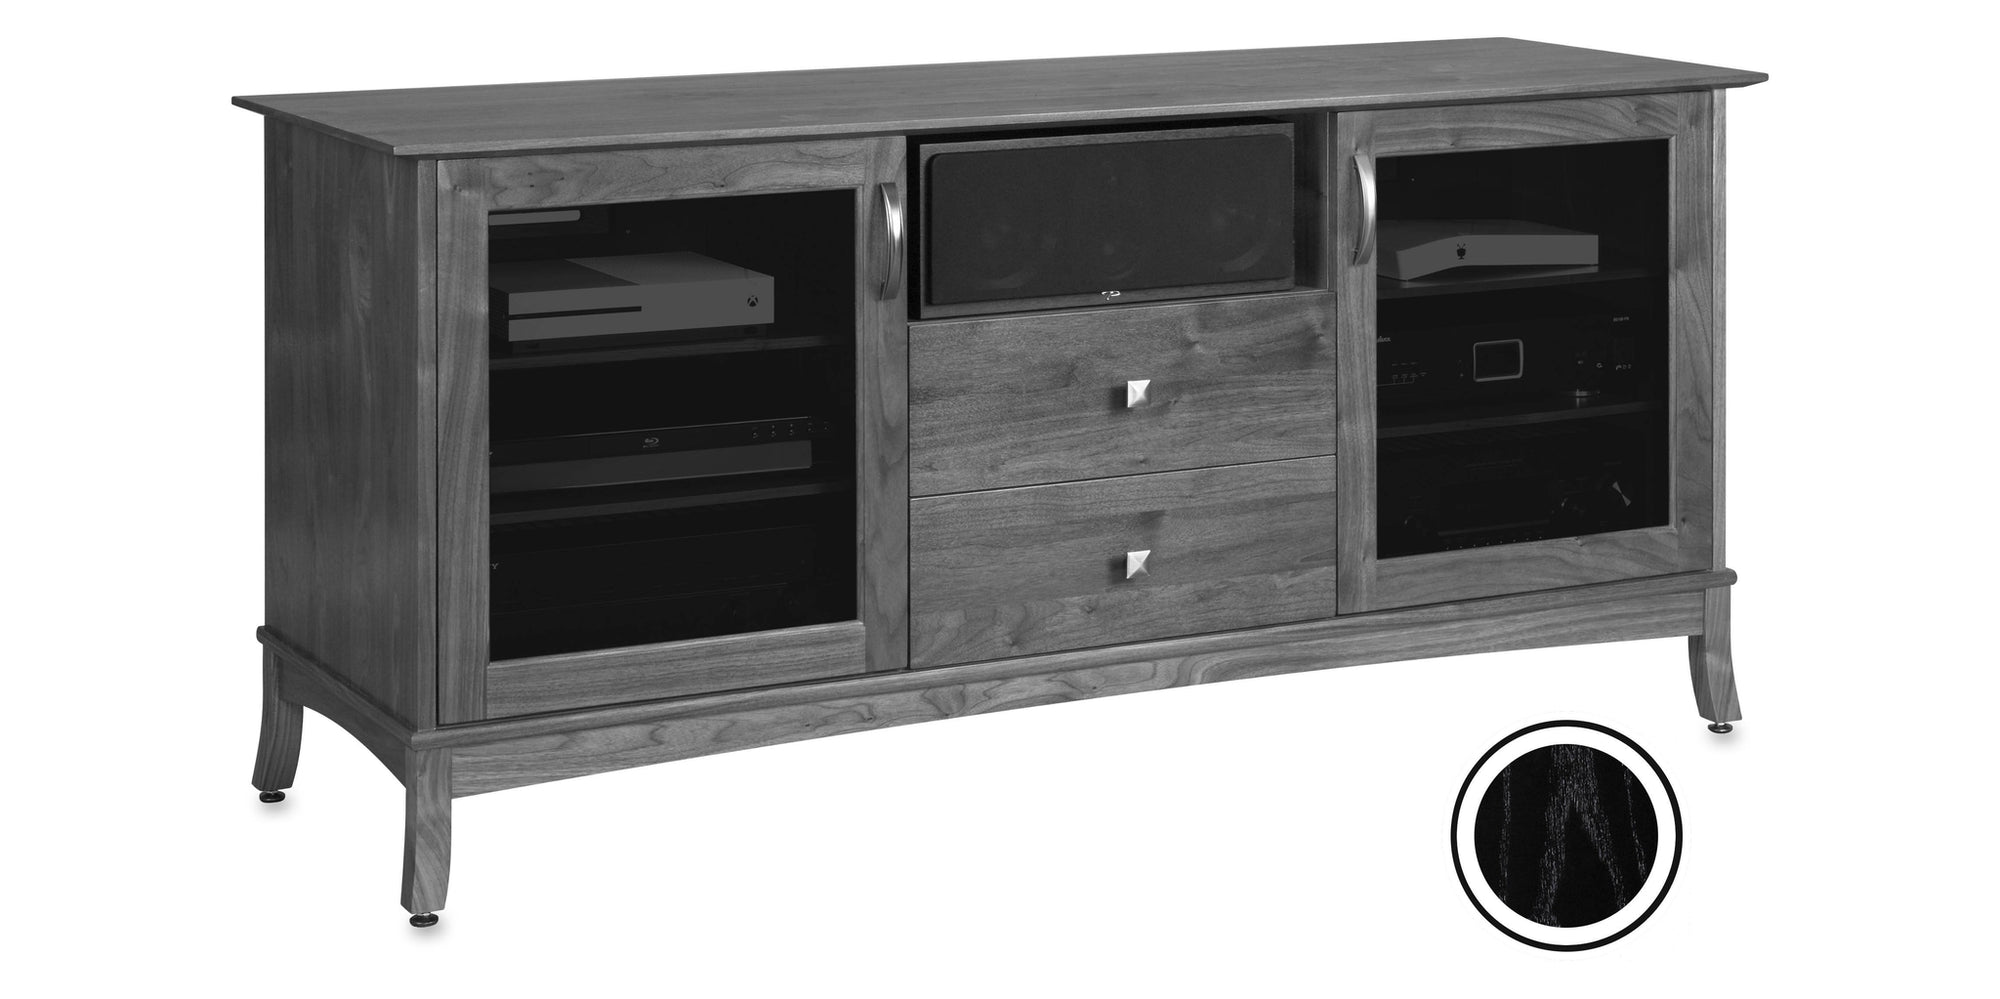 Norwalk 66 American Solid Wood Av Media Console Tv Stand